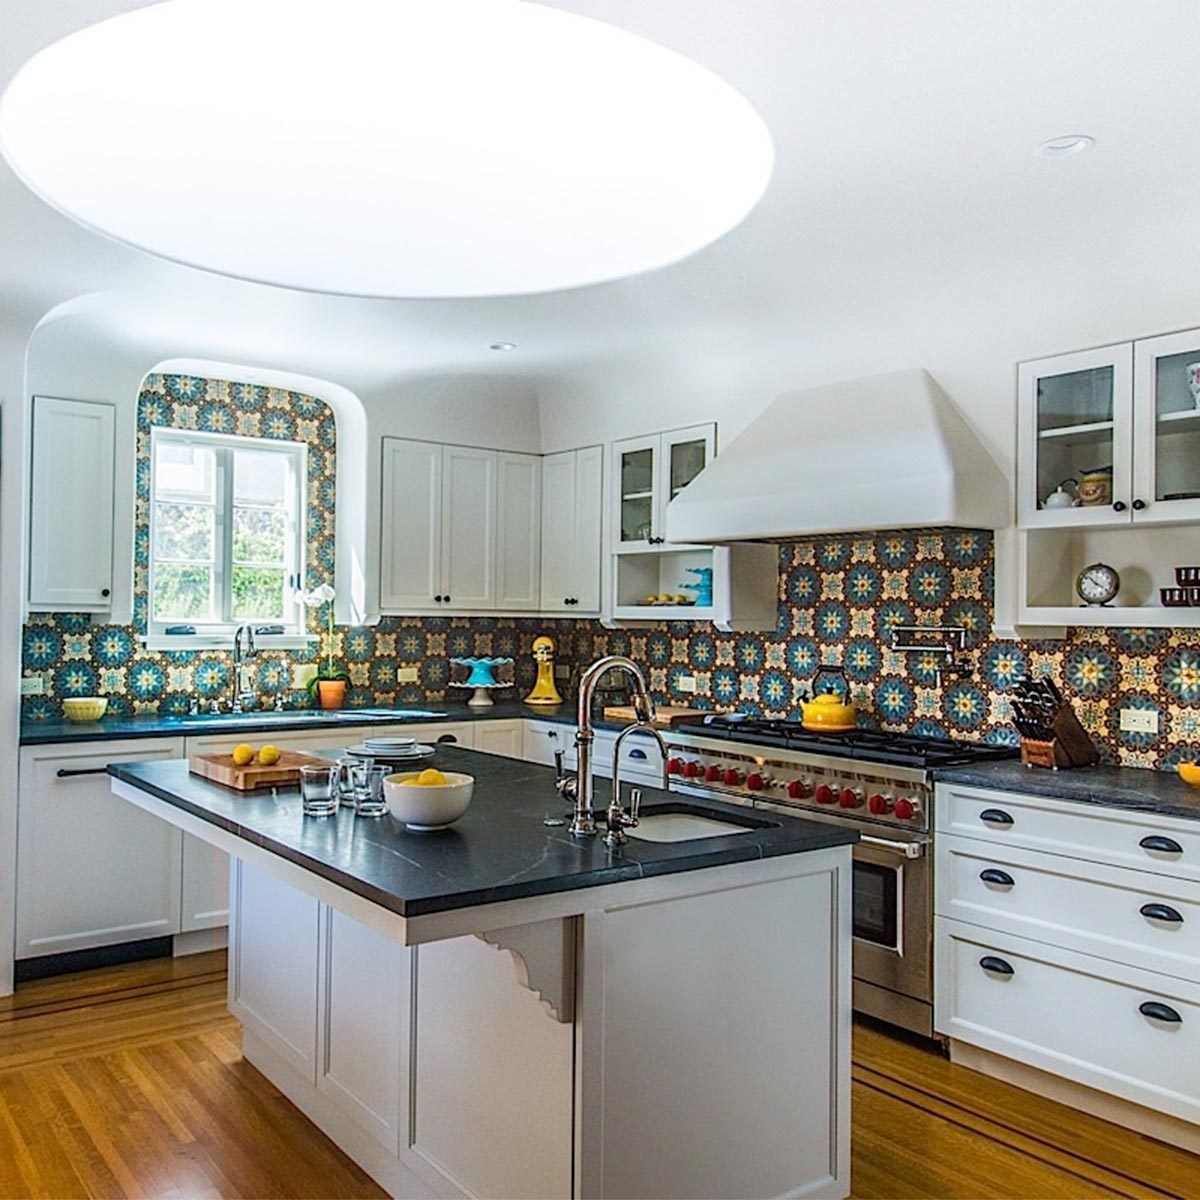 Kitchen Remodeling Ideas Pictures  Incredible Kitchen Remodeling Ideas — The Family Handyman